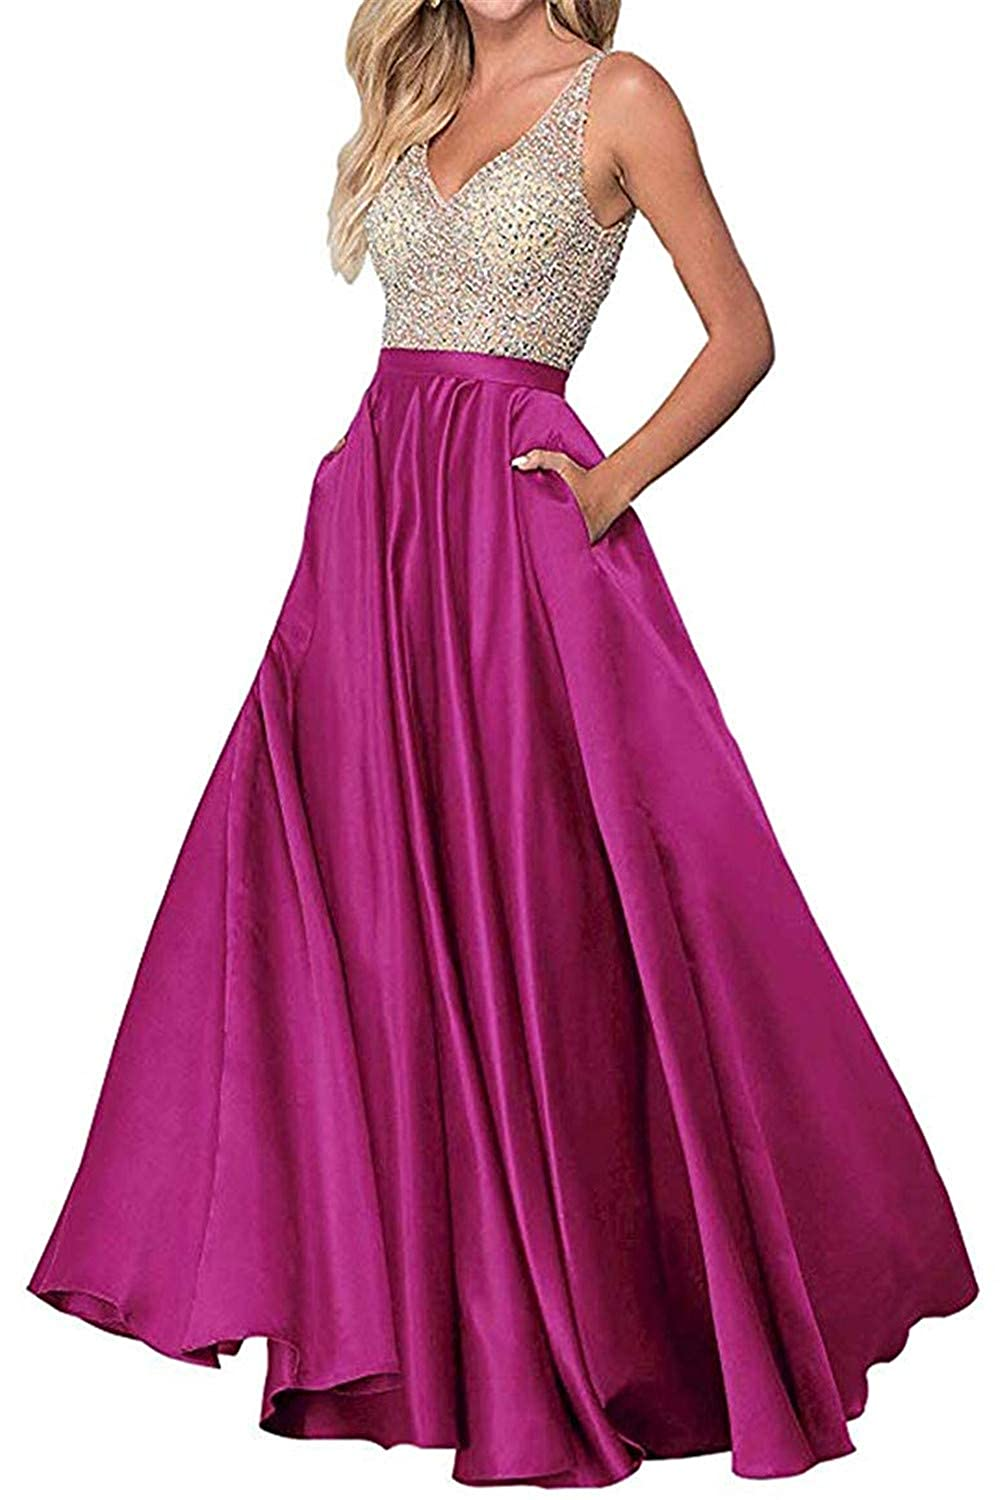 Fuchsia Sophie Women's ALine Long Prom Dresses Double VNeck Beaded Satin Evening Party Gowns S294